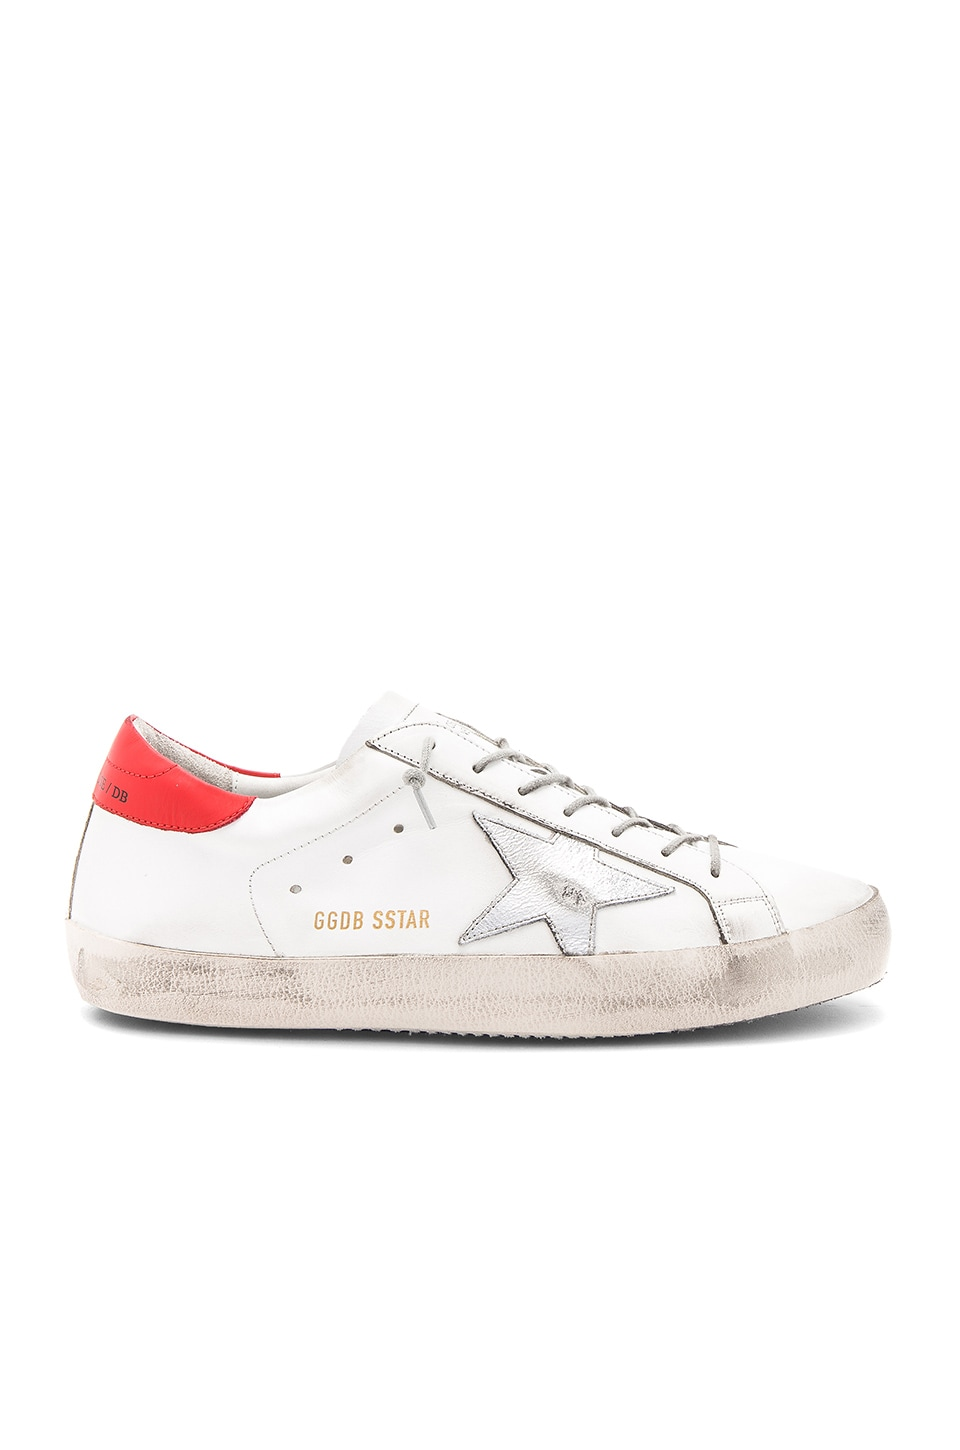 Superstar by Golden Goose